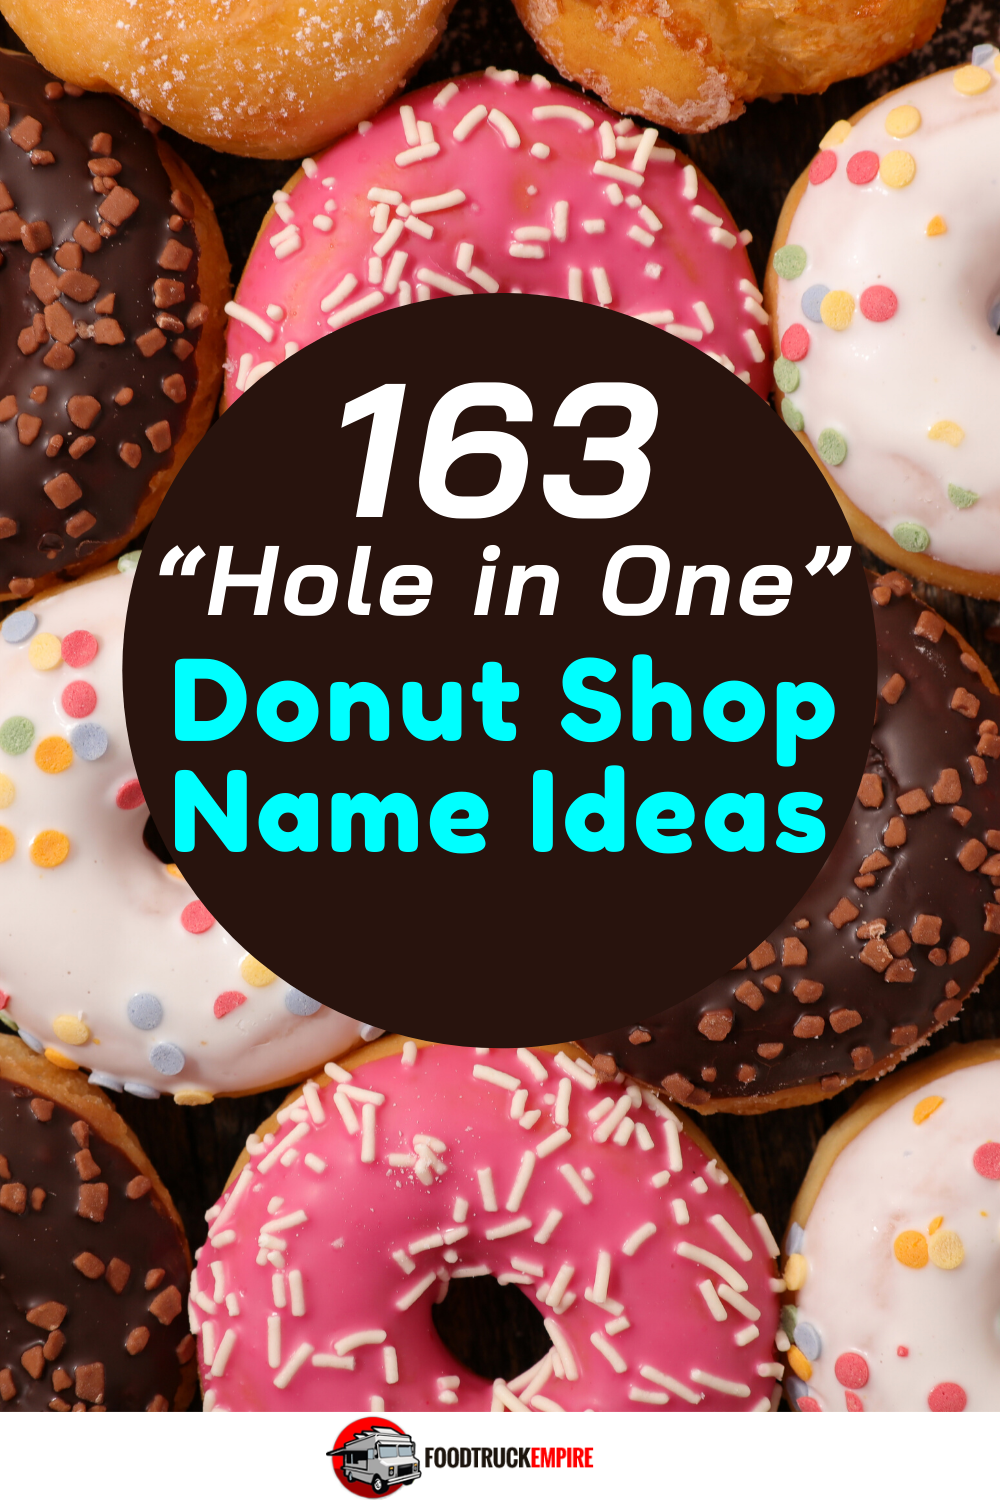 "163 ""Hole in One"" Donut Shop Name Ideas"